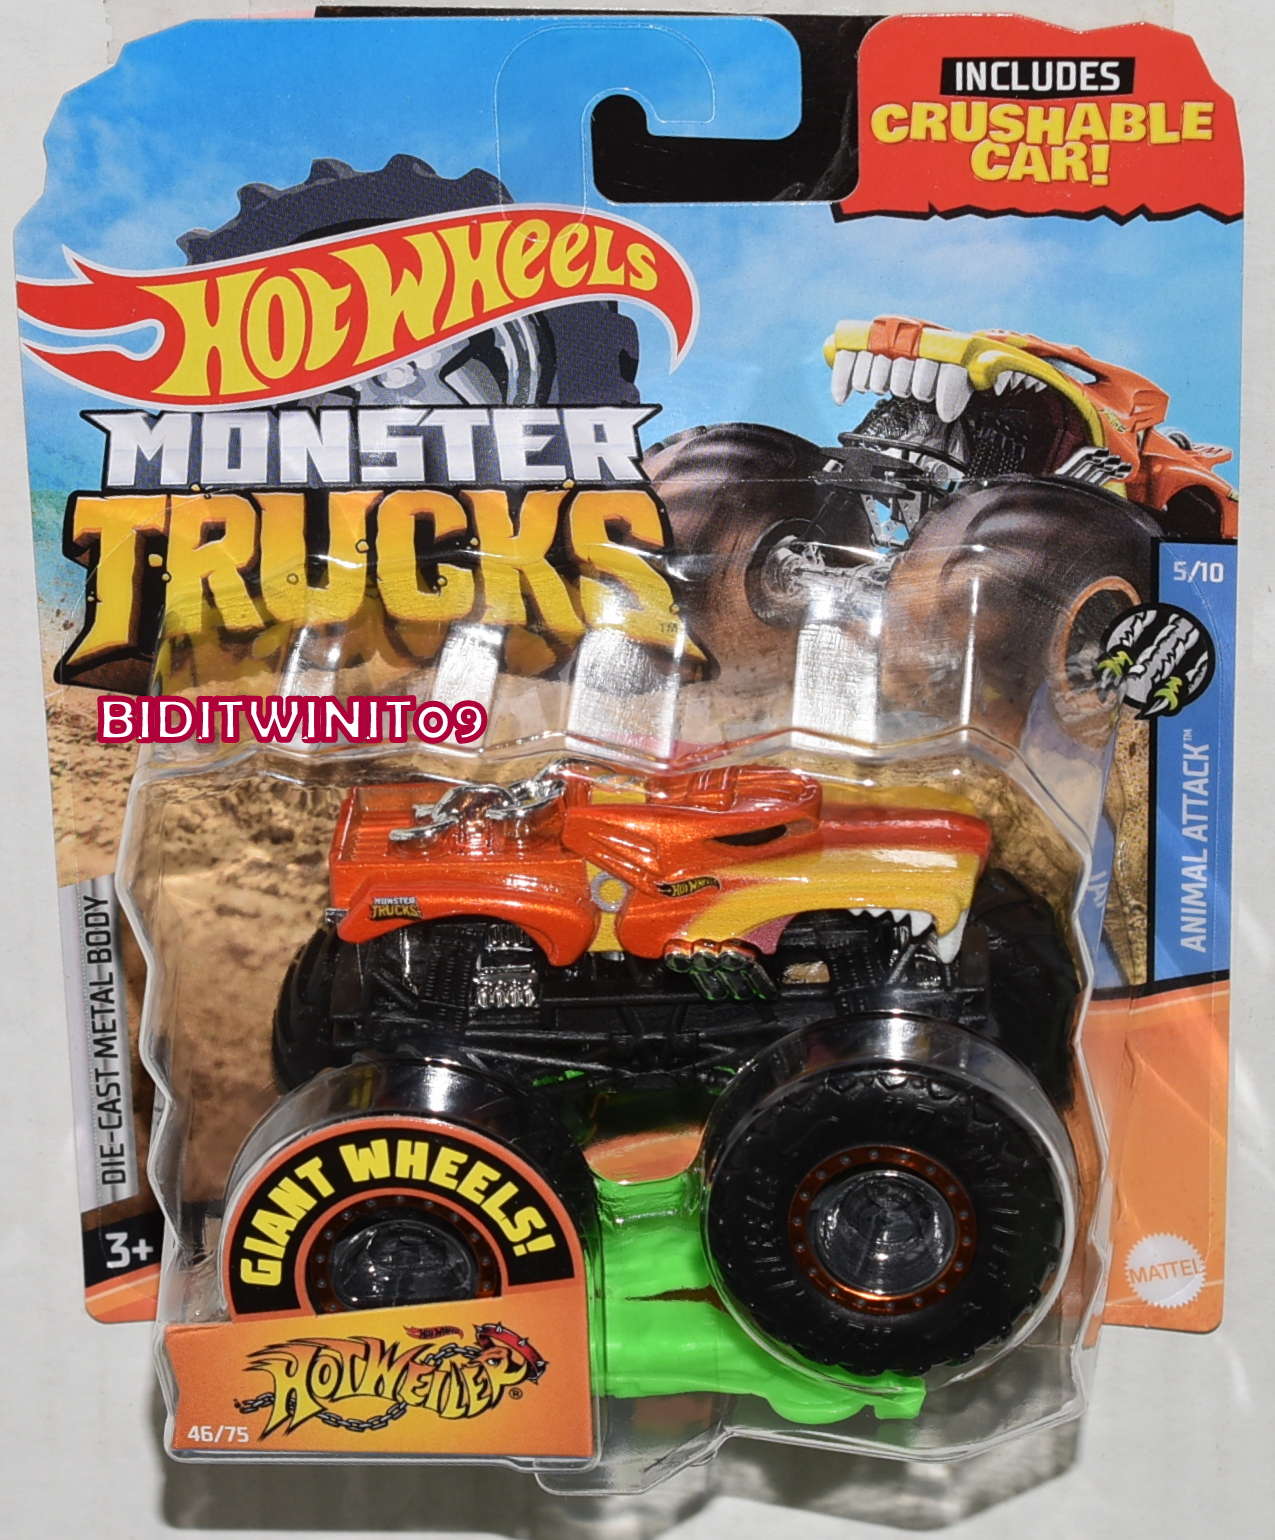 Hot Wheels 2020 Giant Wheels Monster Trucks Case G Hotweiler Animal Attack 0024500 5 53 Biditwinit09 Com Classic Colections